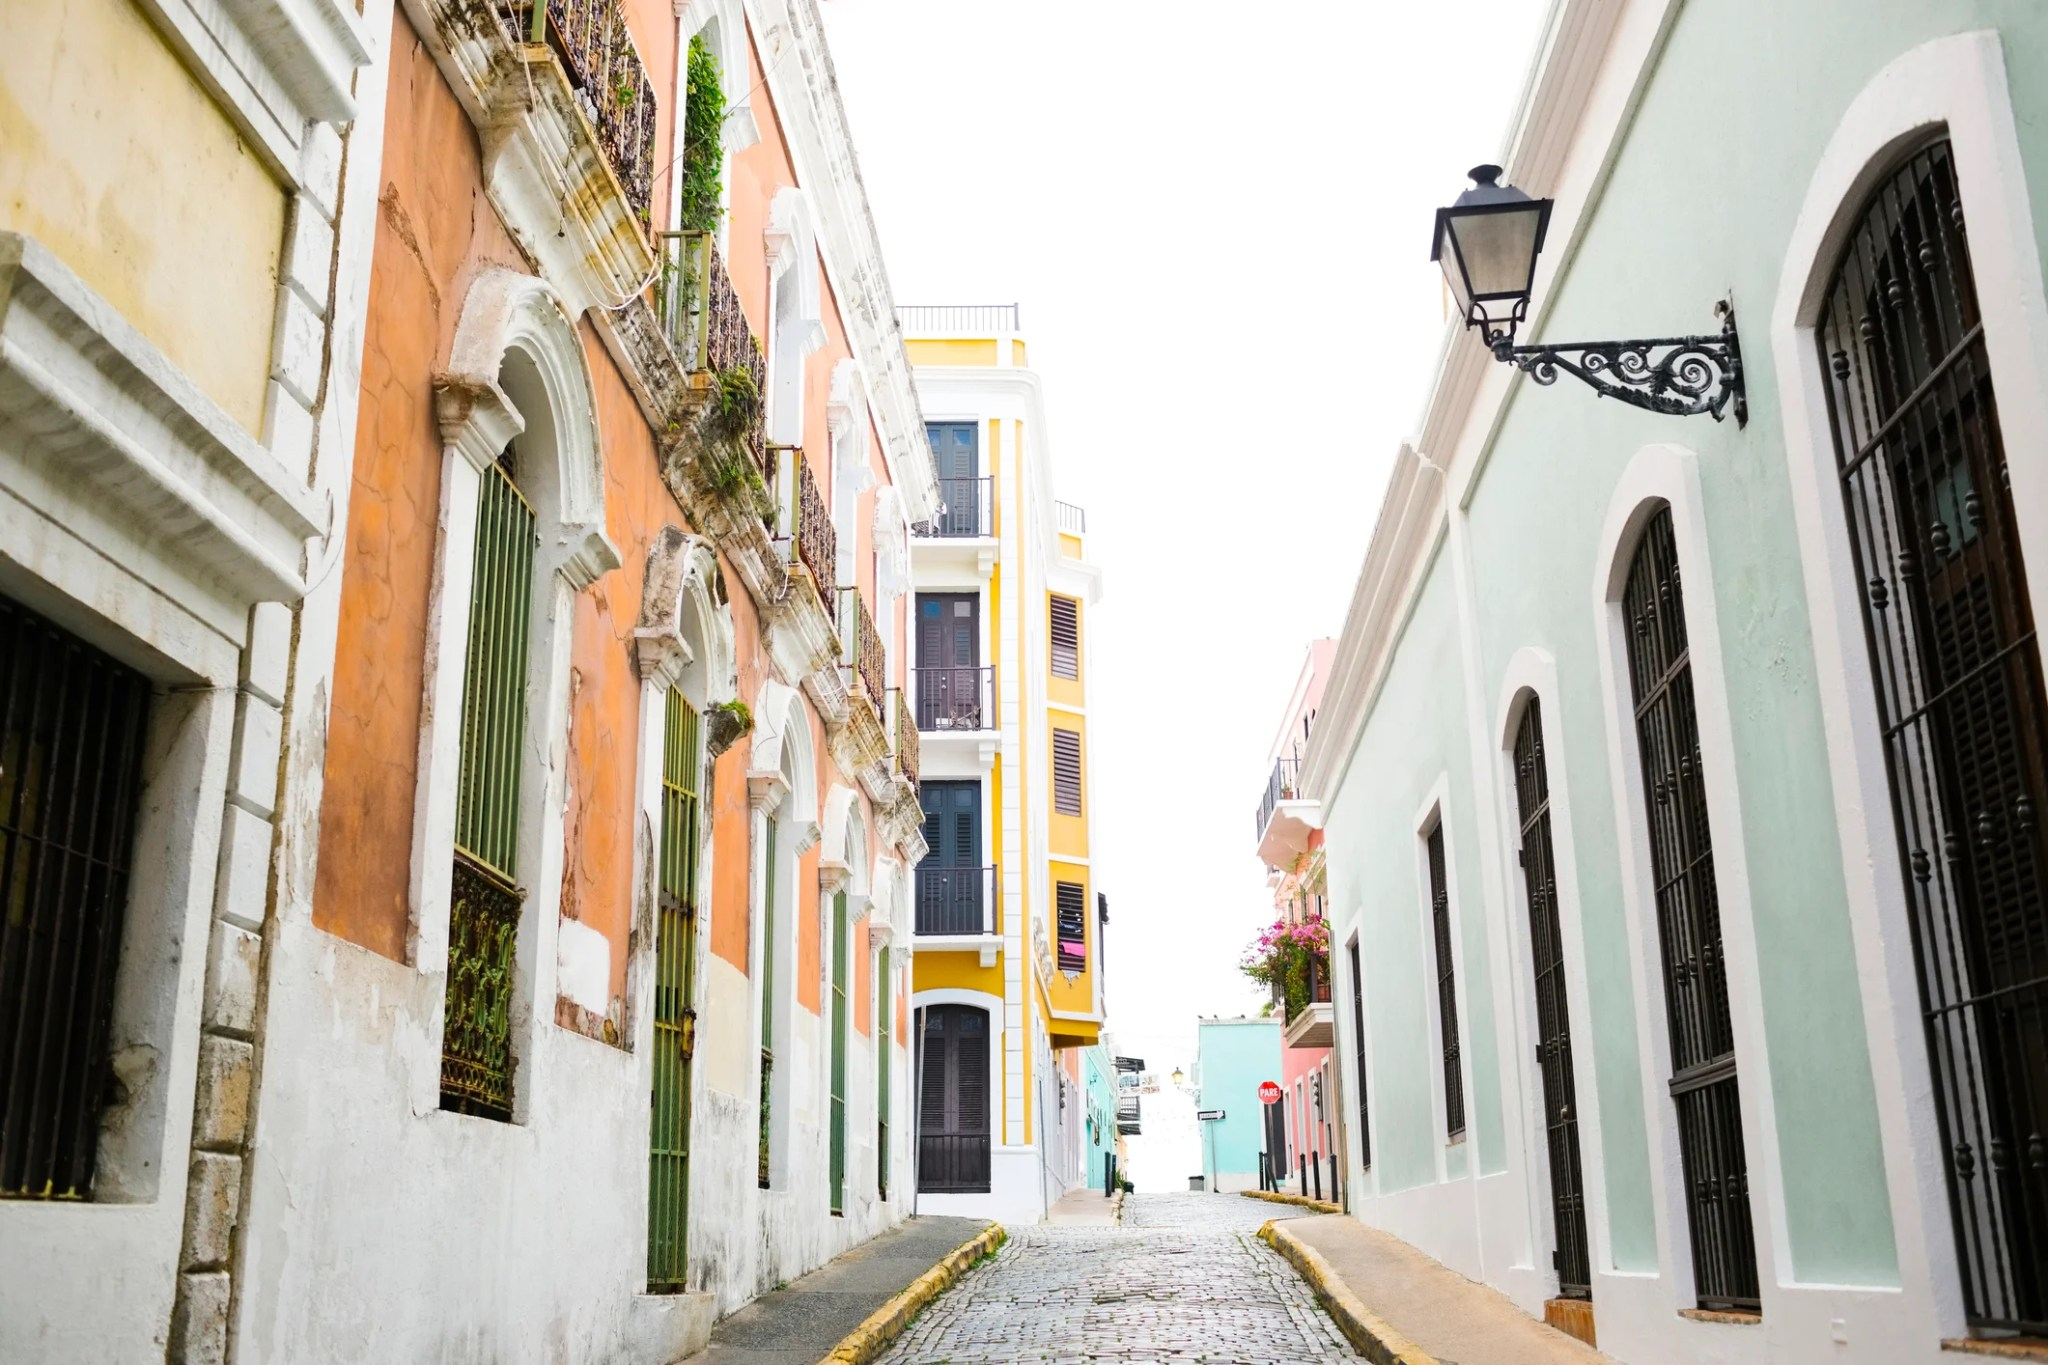 Insane deal: 200 JetBlue points from Boston to Puerto Rico, round-trip!